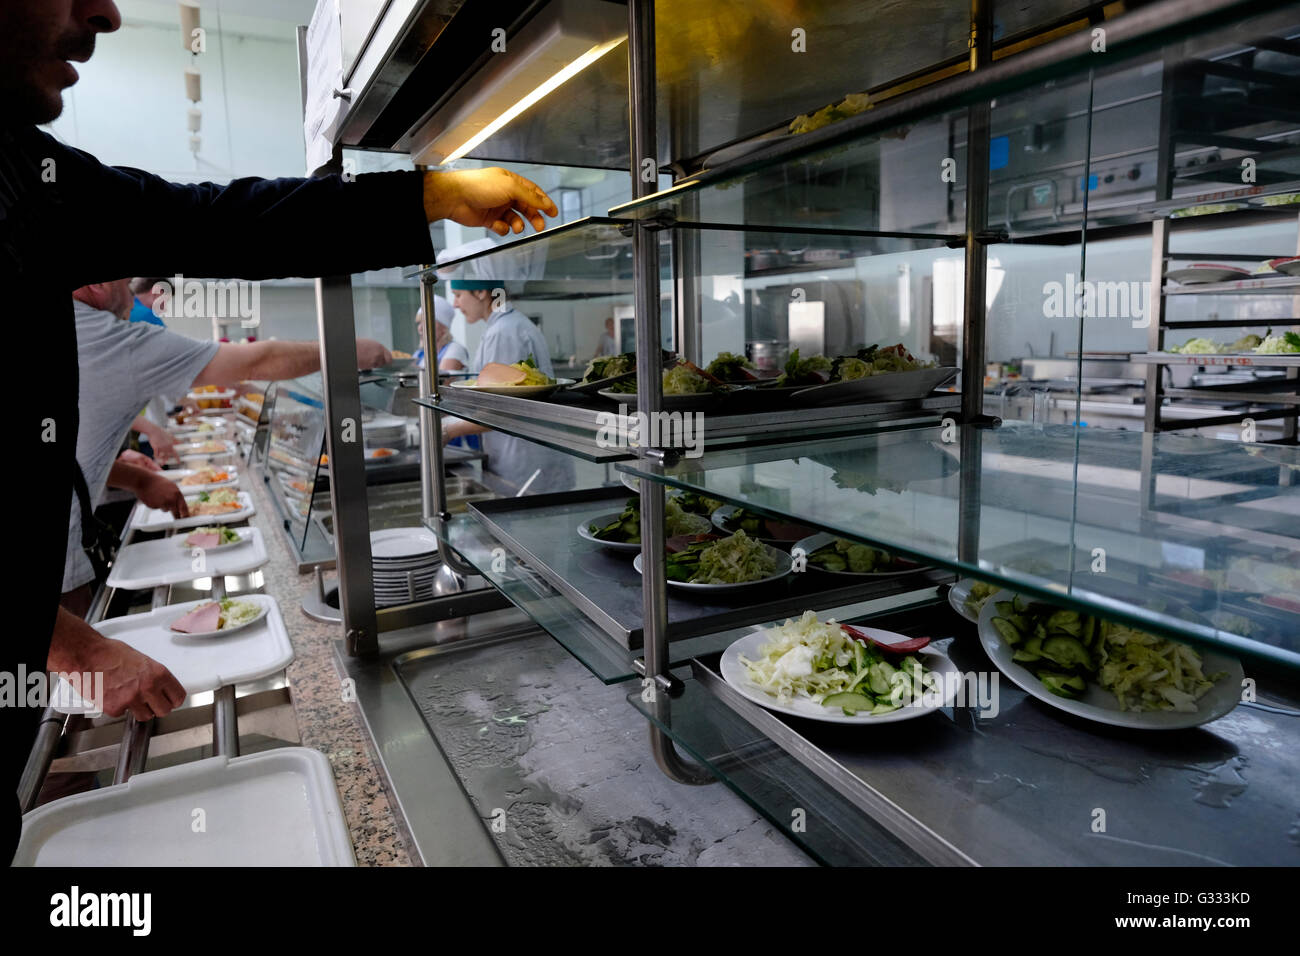 Visitors having their lunch at the canteen of Chernobyl nuclear site in Ukraine on 04 June 2016. The Chernobyl accident - Stock Image